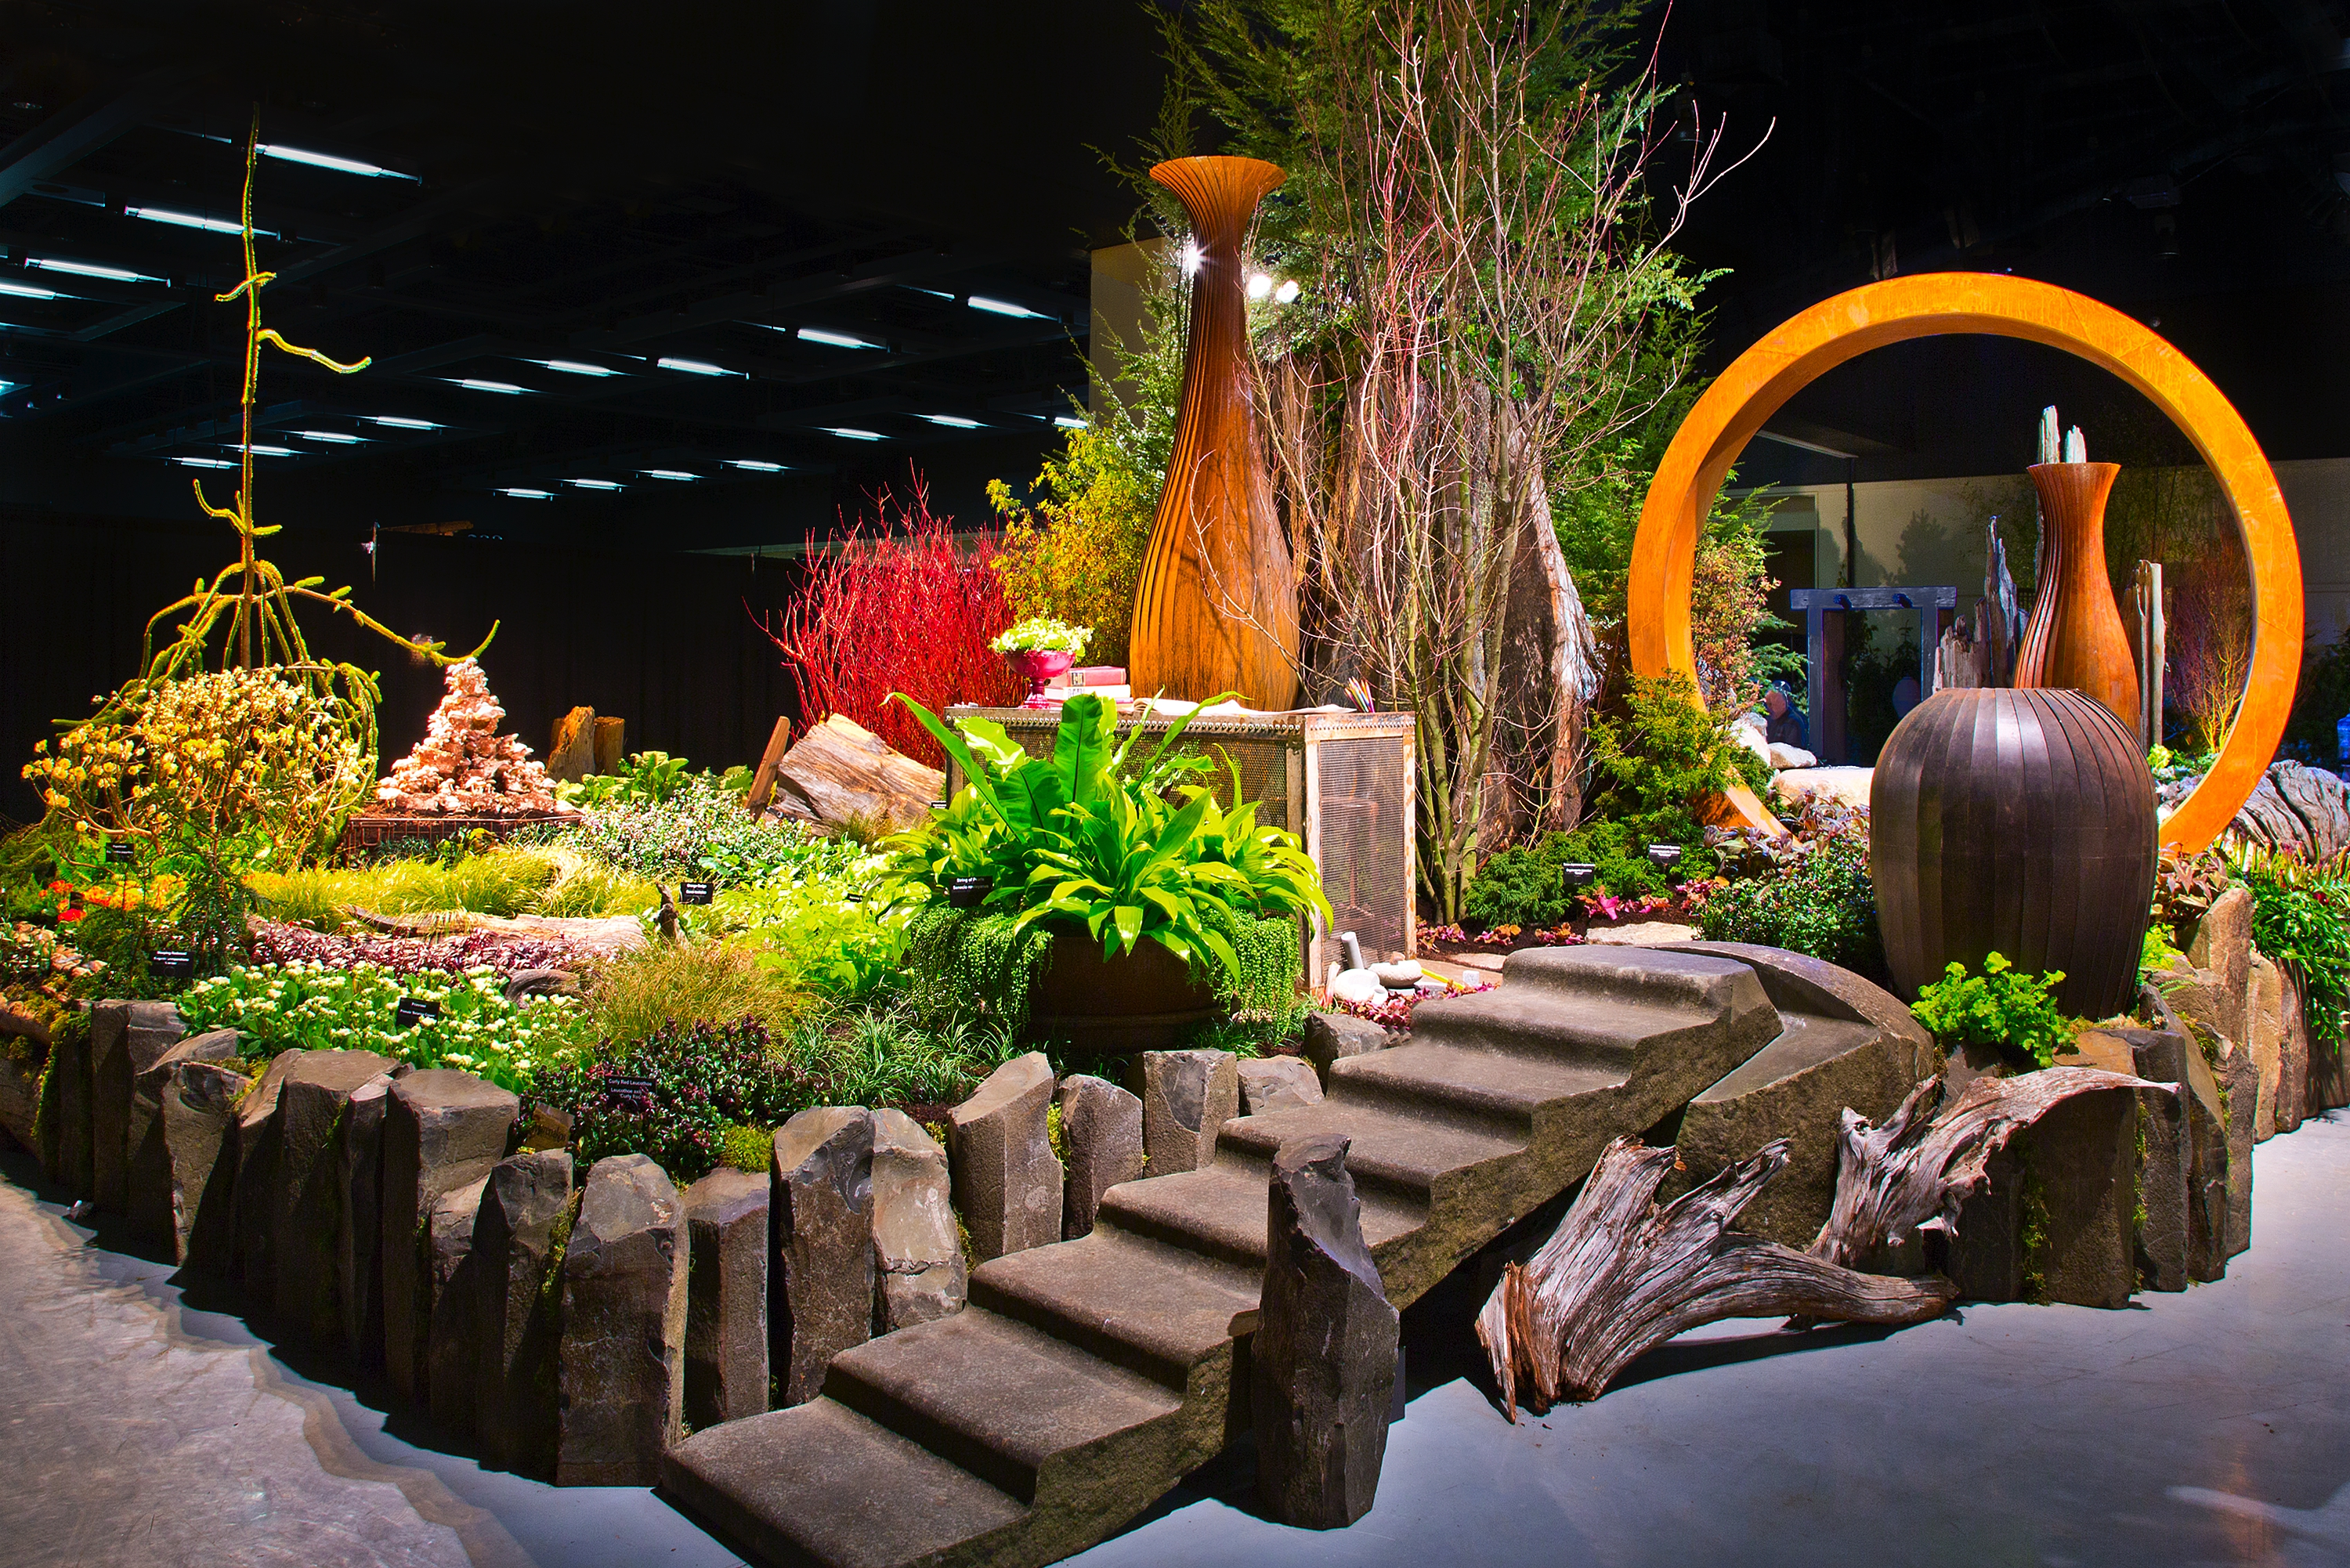 northwest flower and garden show - wikipedia